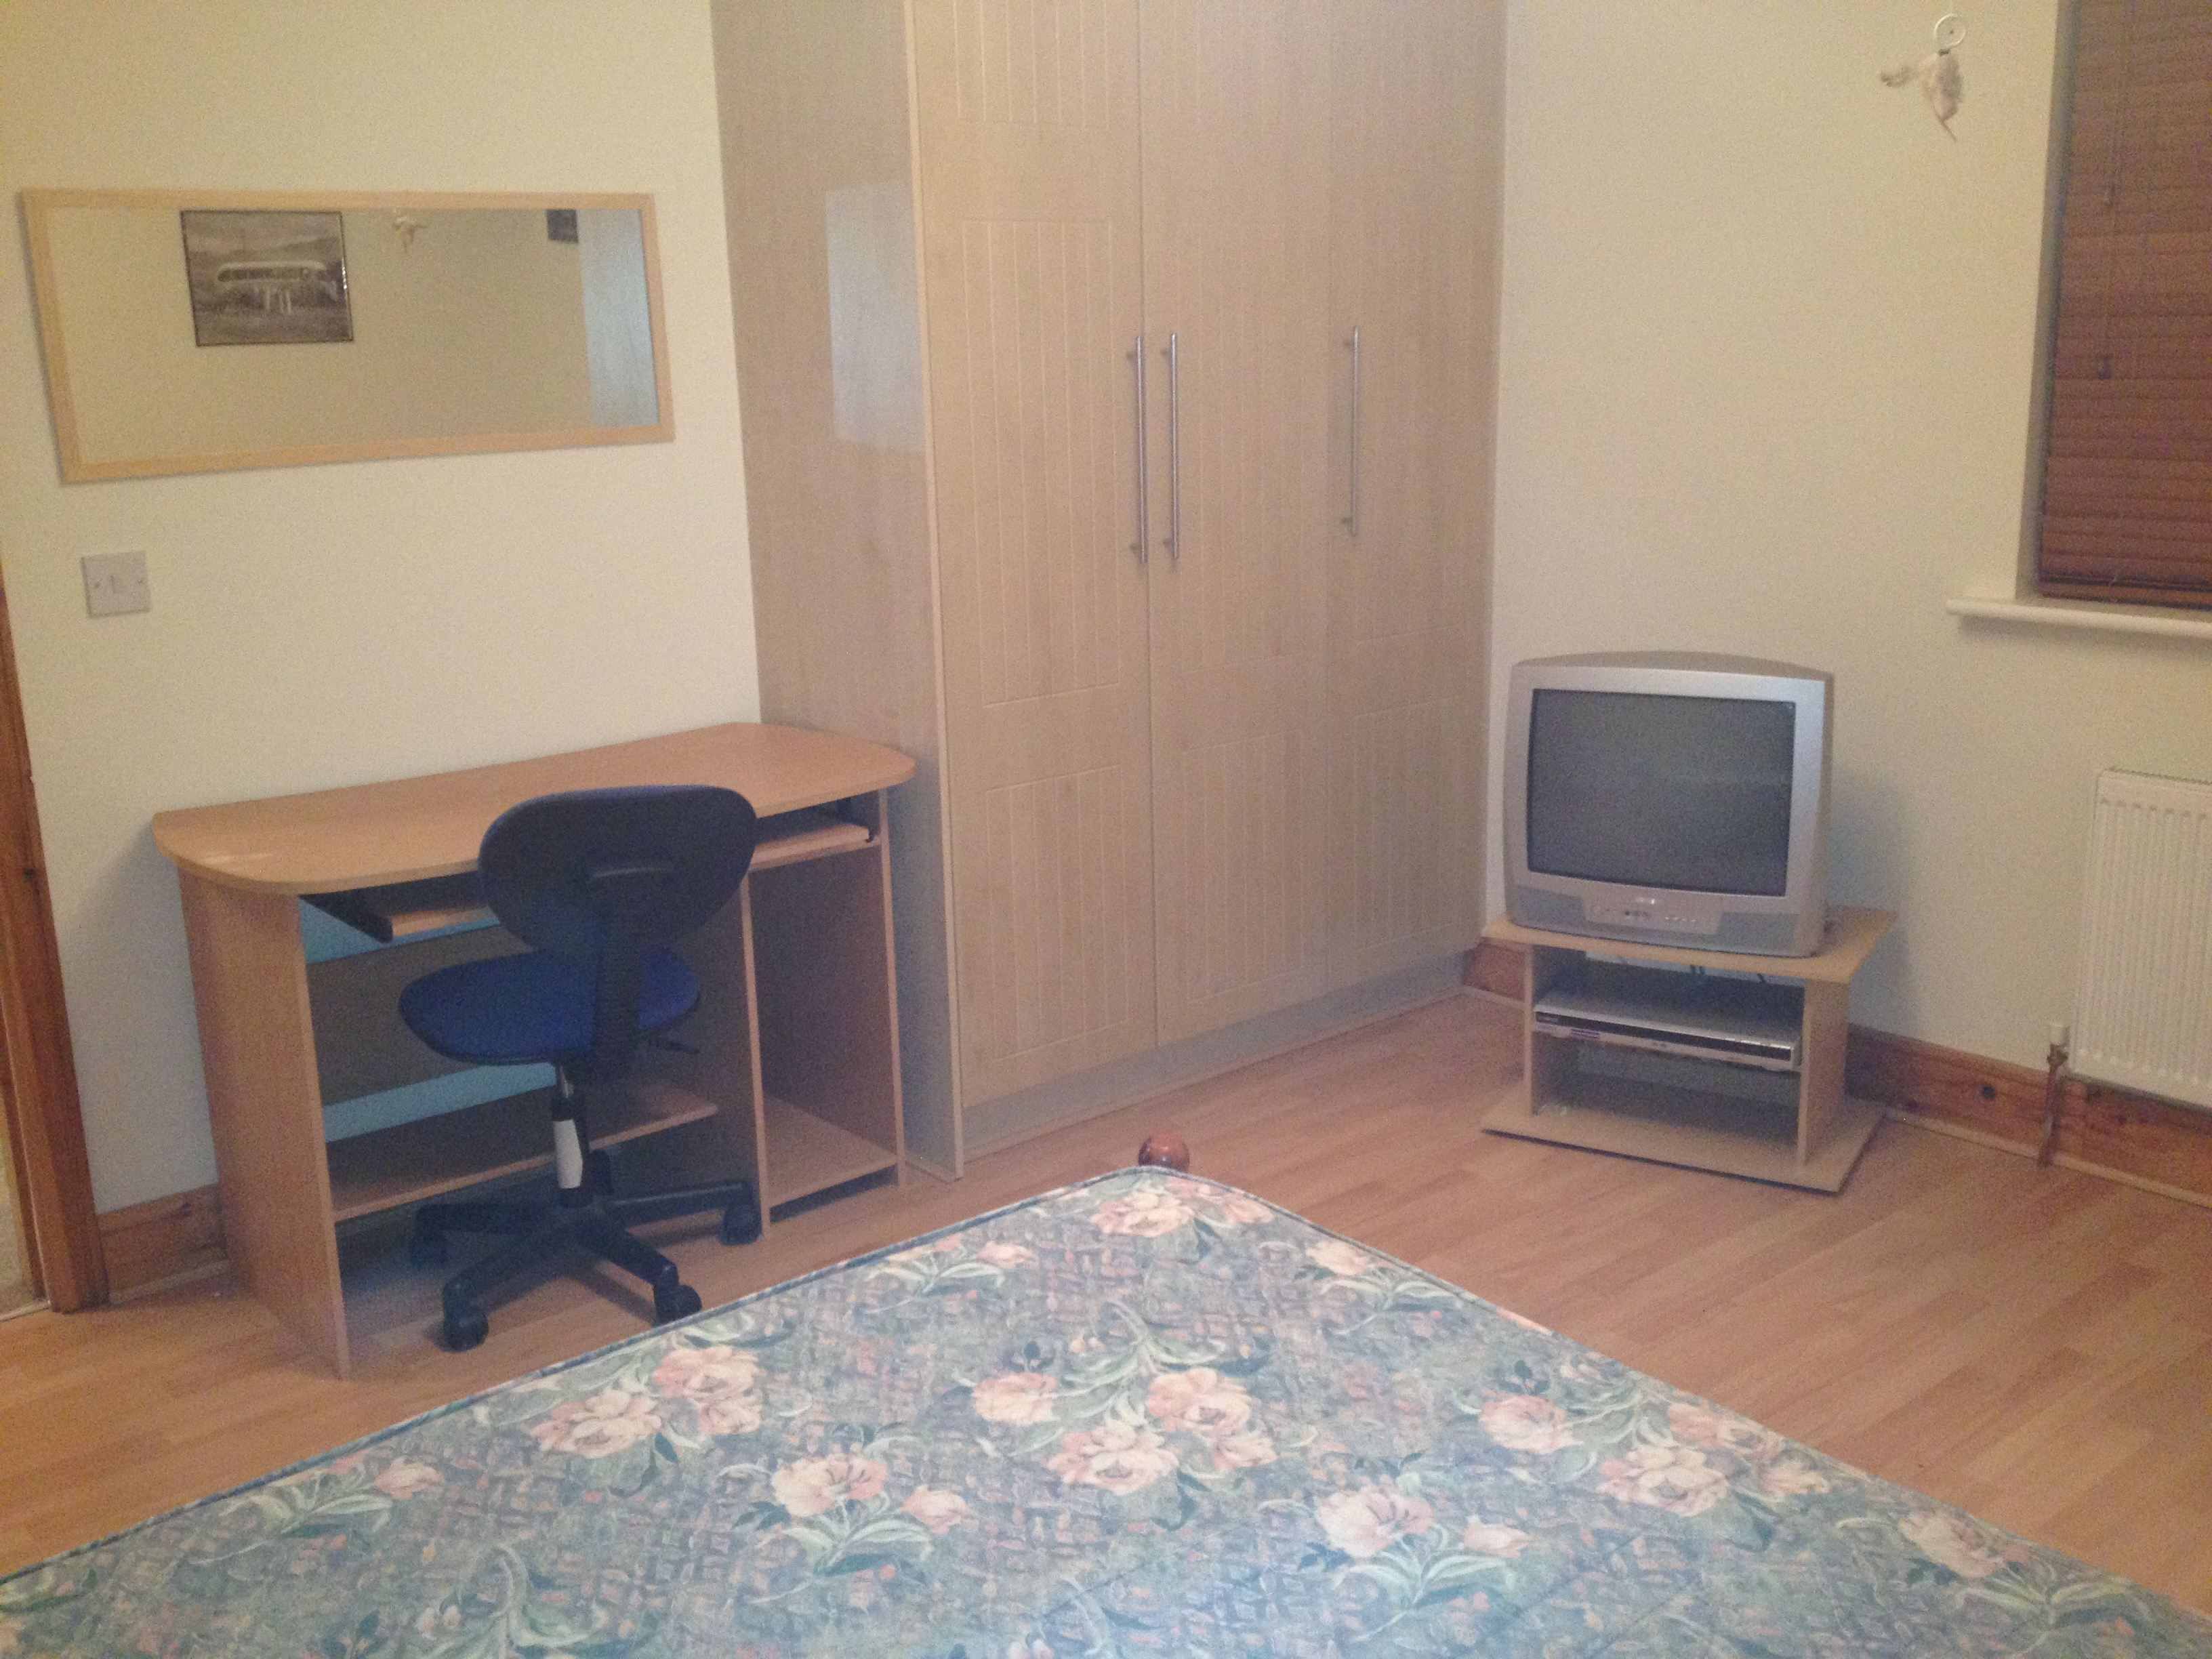 ROOM TO LET: 1 Large Double Bedroom in Adamstown, Lucan